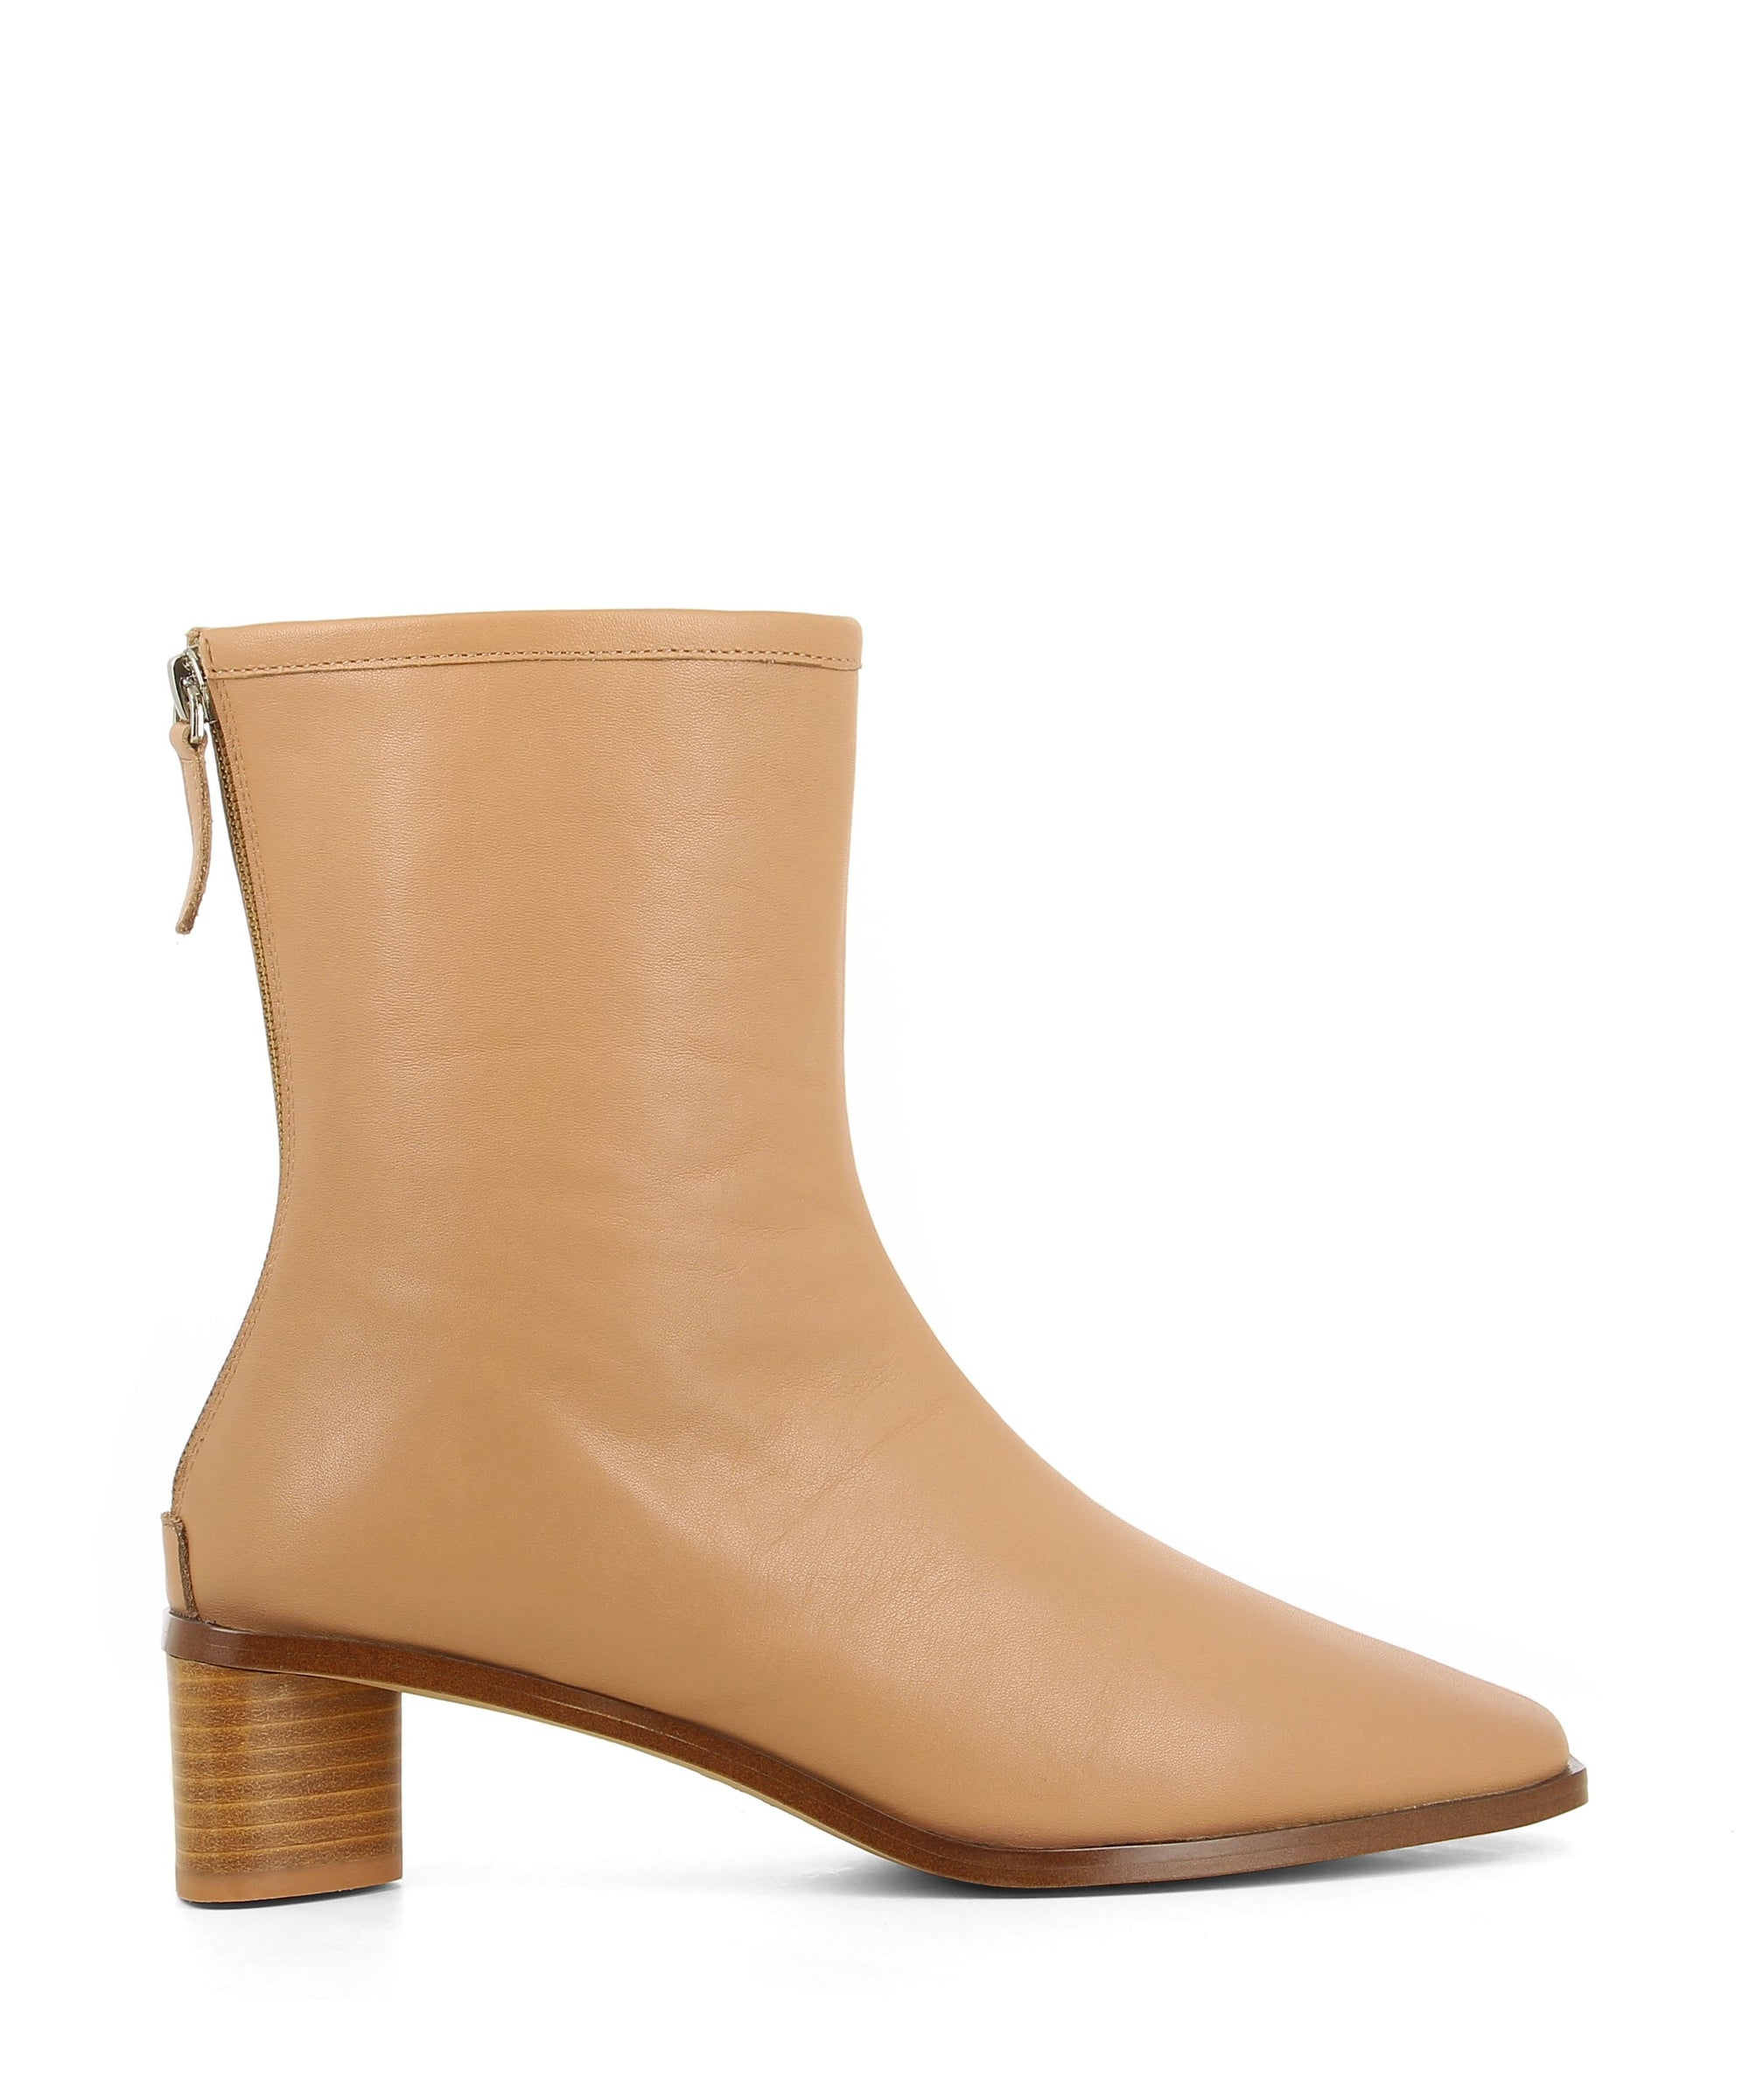 Sleek camel leather ankle boots featuring zipper fastenings, seam detailing on the upper, a low block heel and a square toe by 2 Baia Vista.